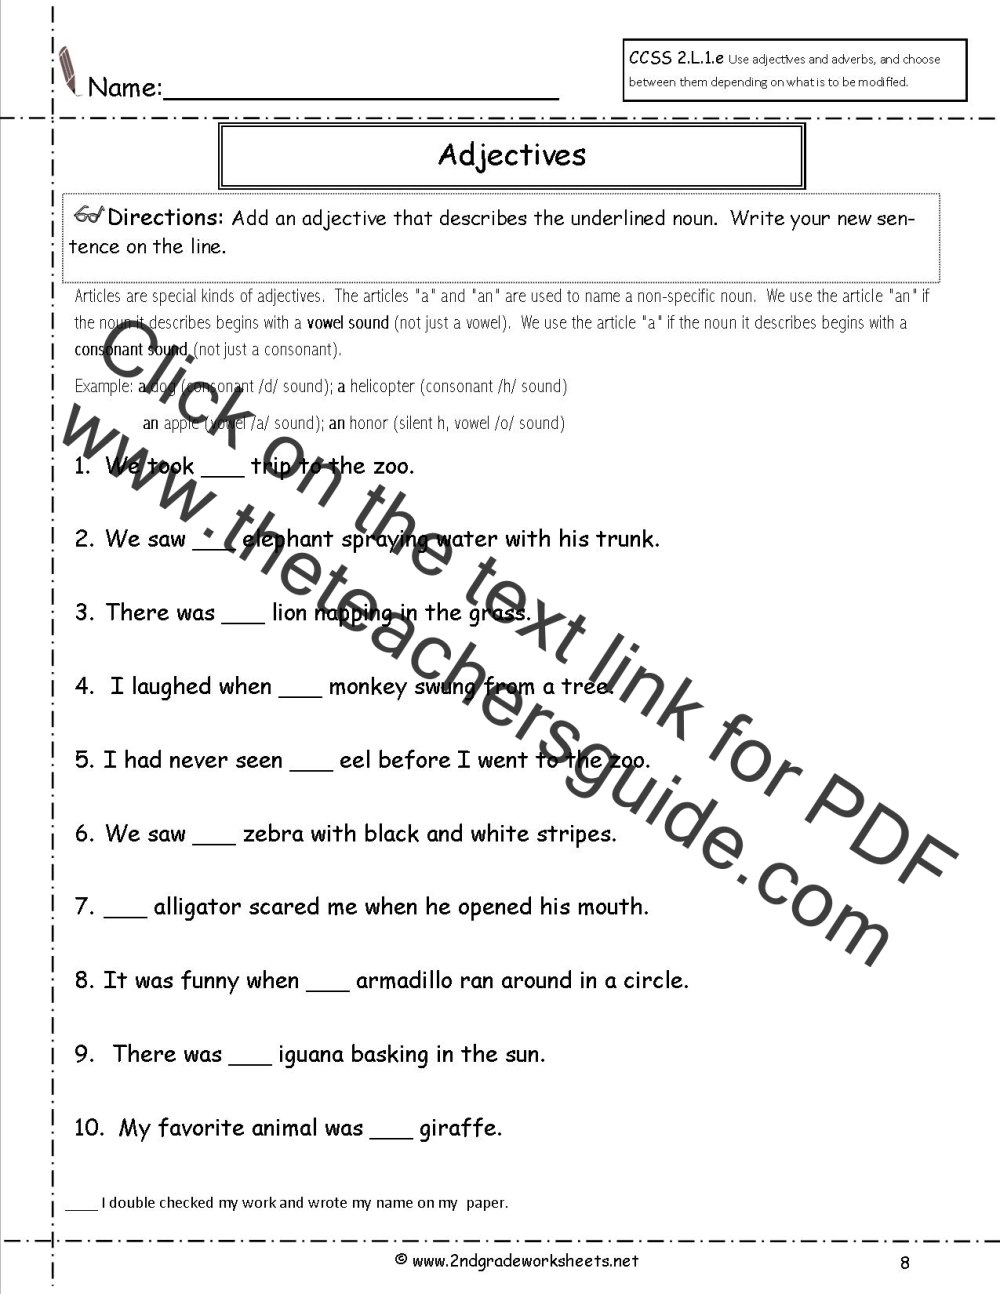 medium resolution of Free Language/Grammar Worksheets and Printouts